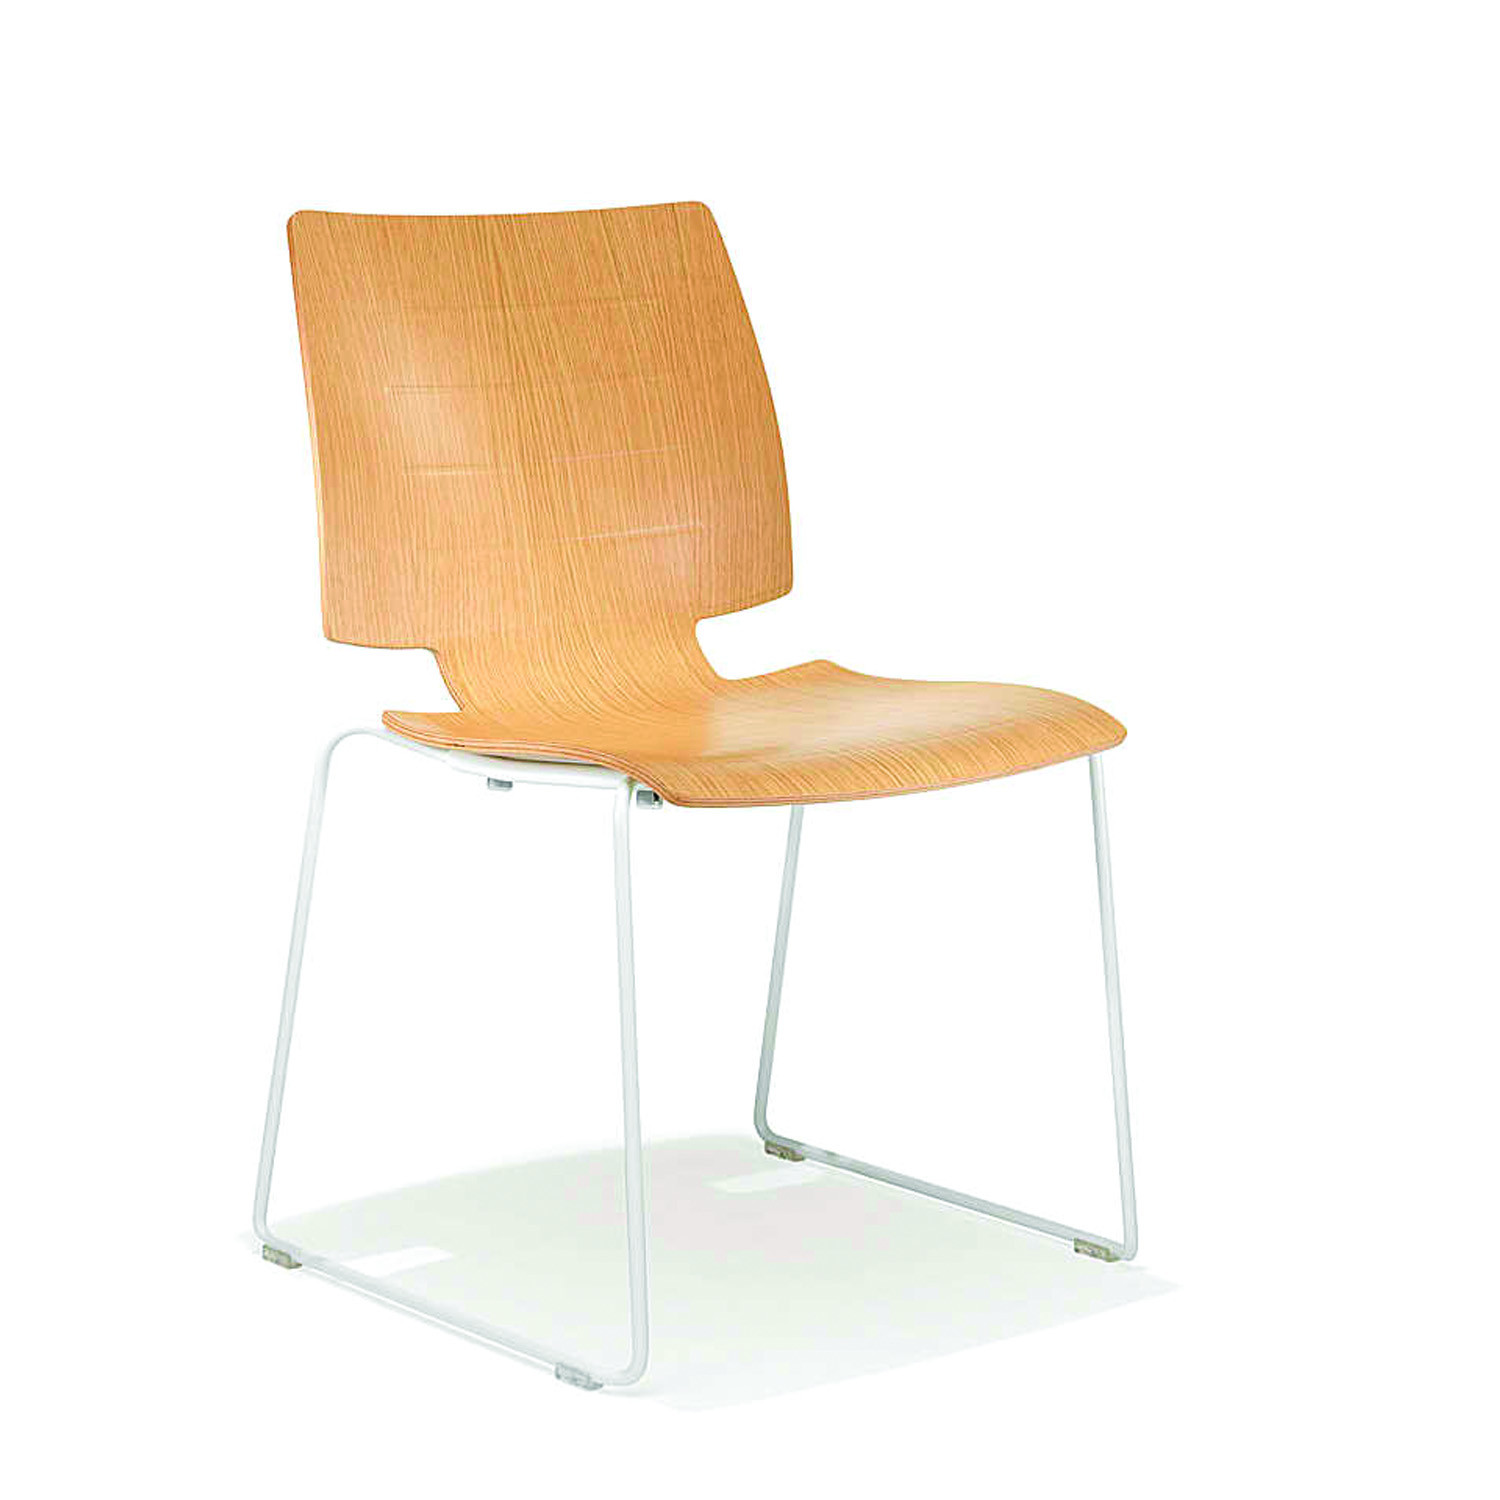 2100 Uni_Verso Sled-Base Wooden Chair